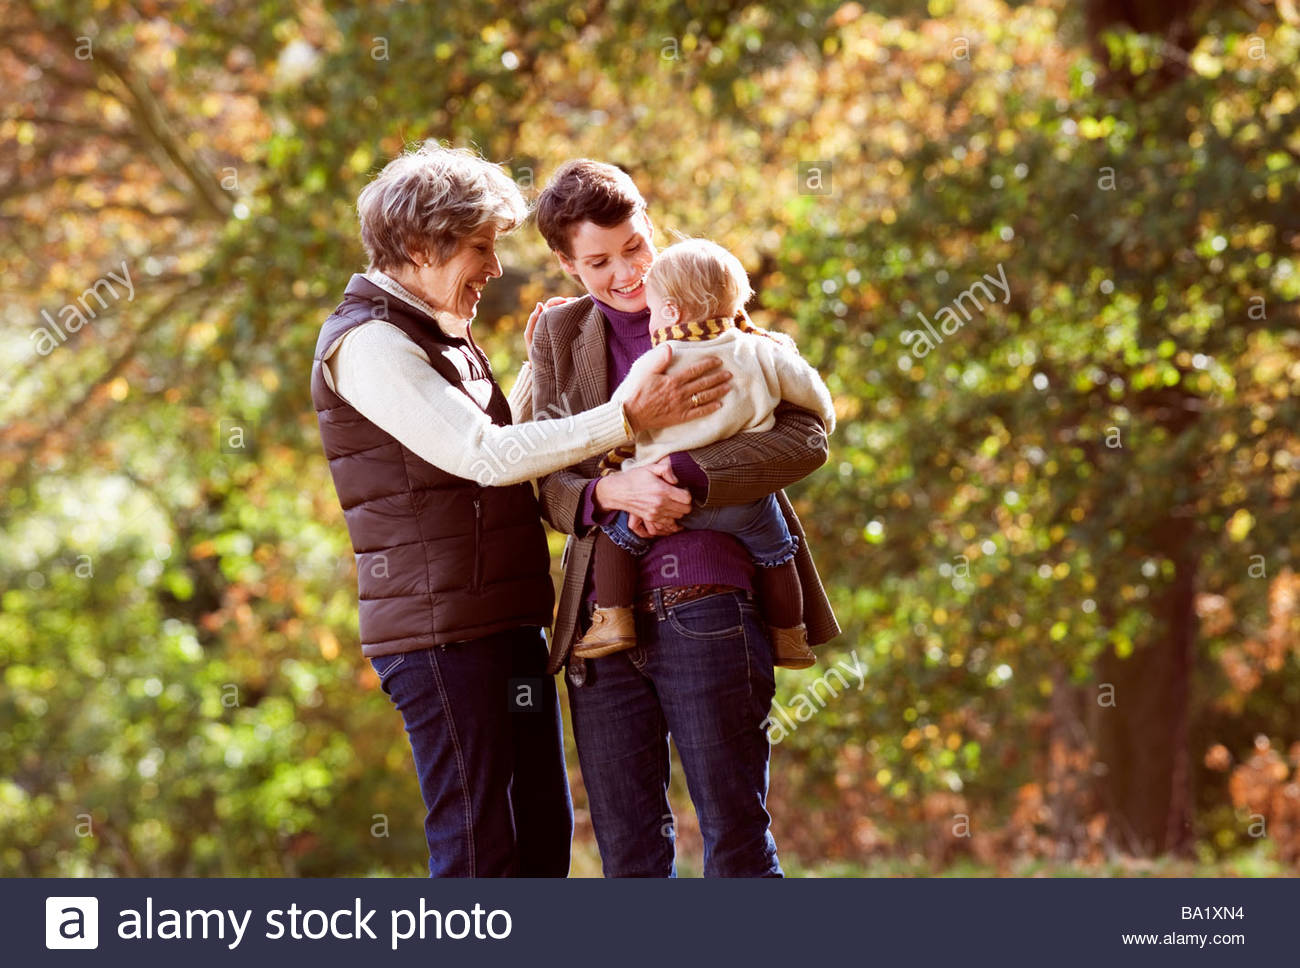 Mother and daughter smiling at baby - Stock Image